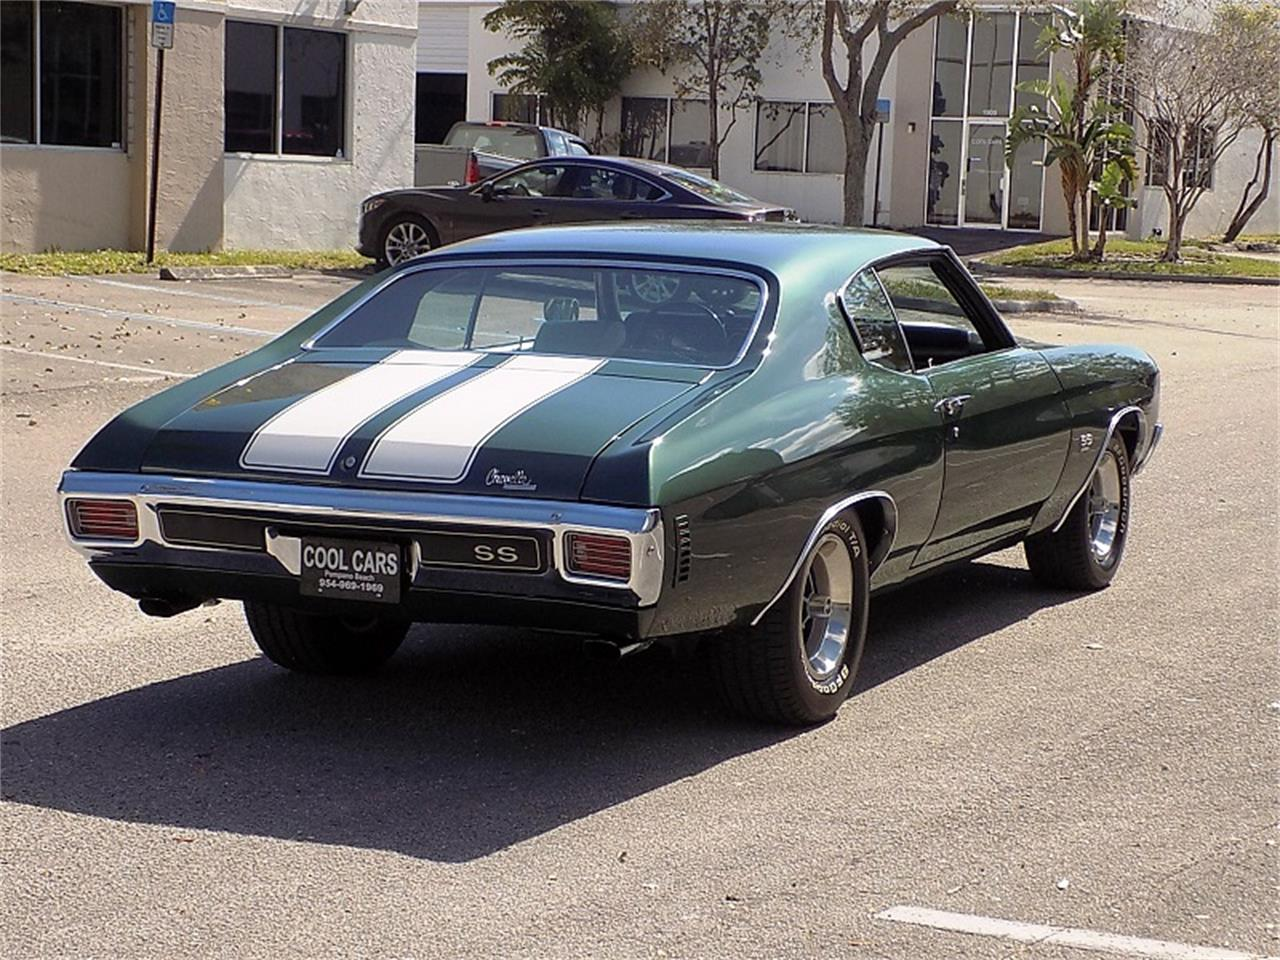 Large Picture of '70 Chevrolet Chevelle SS located in Florida - $38,500.00 - PF2R